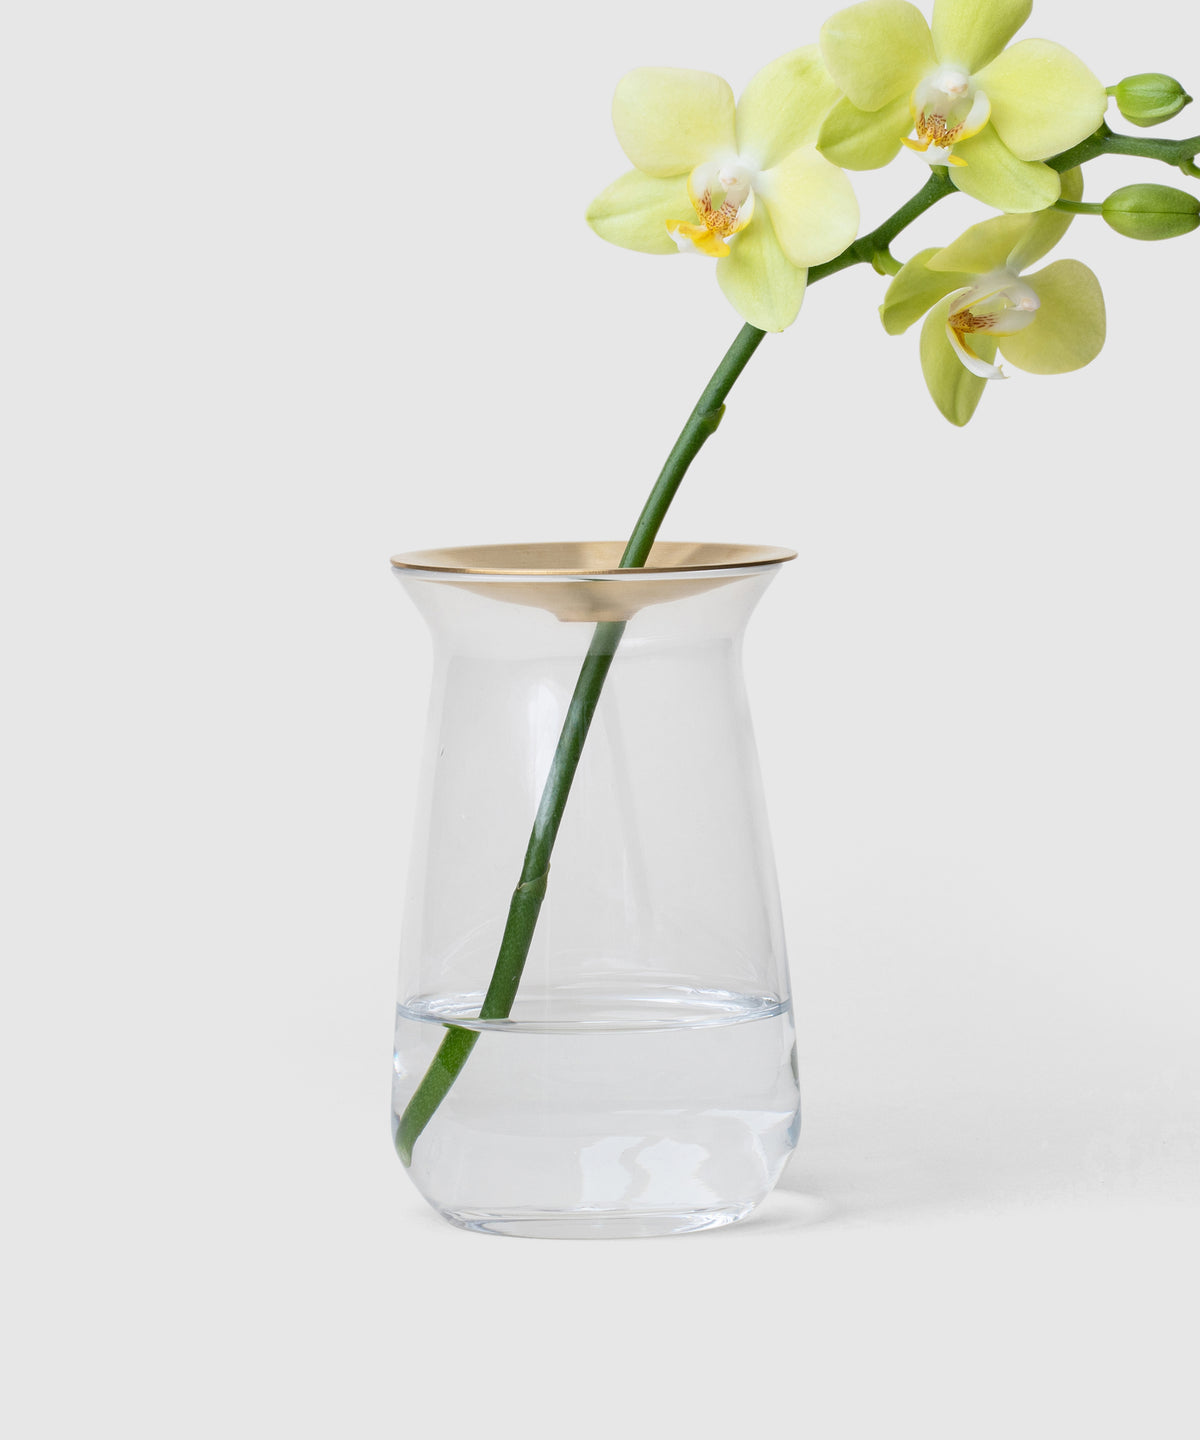 Small & Joyful Flower Vase